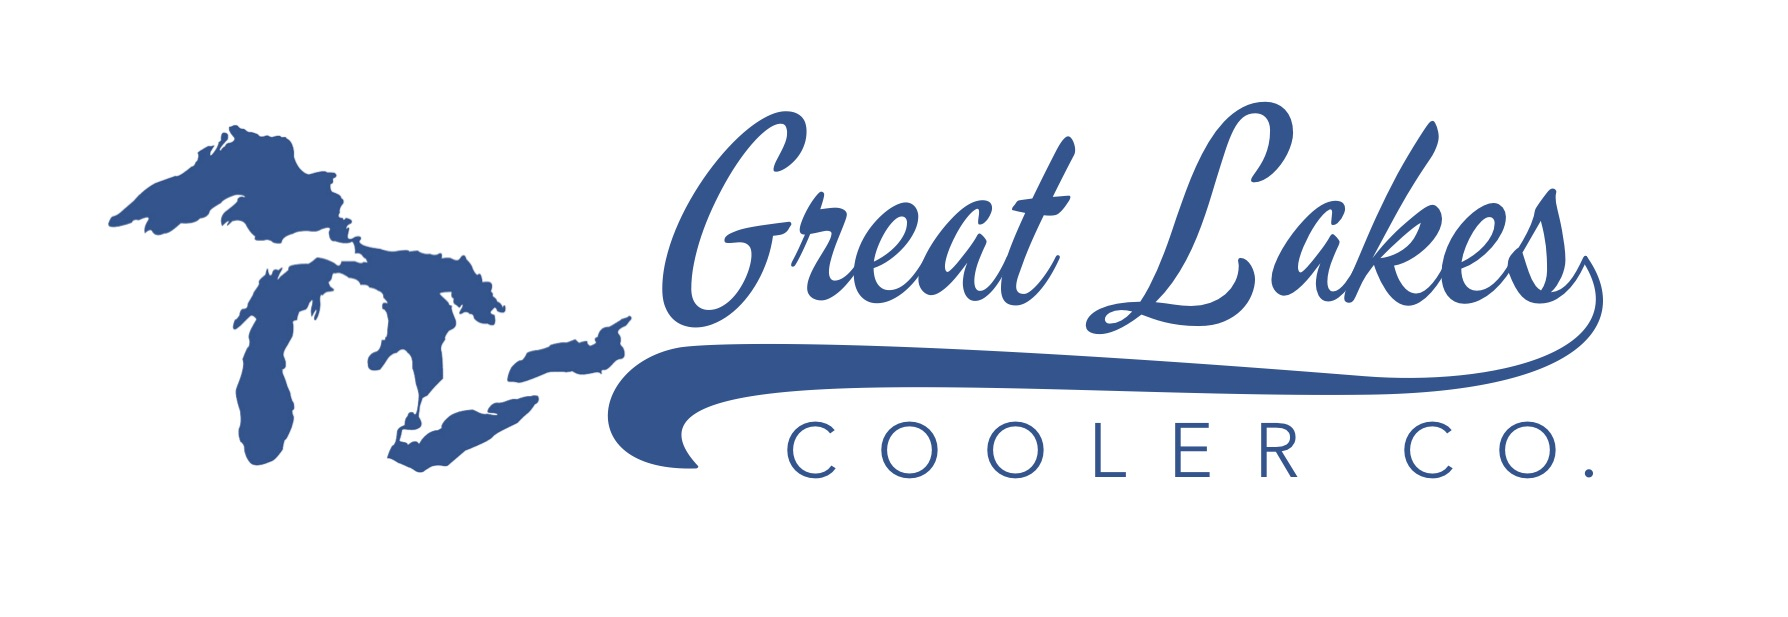 Great Lakes Logo JPG